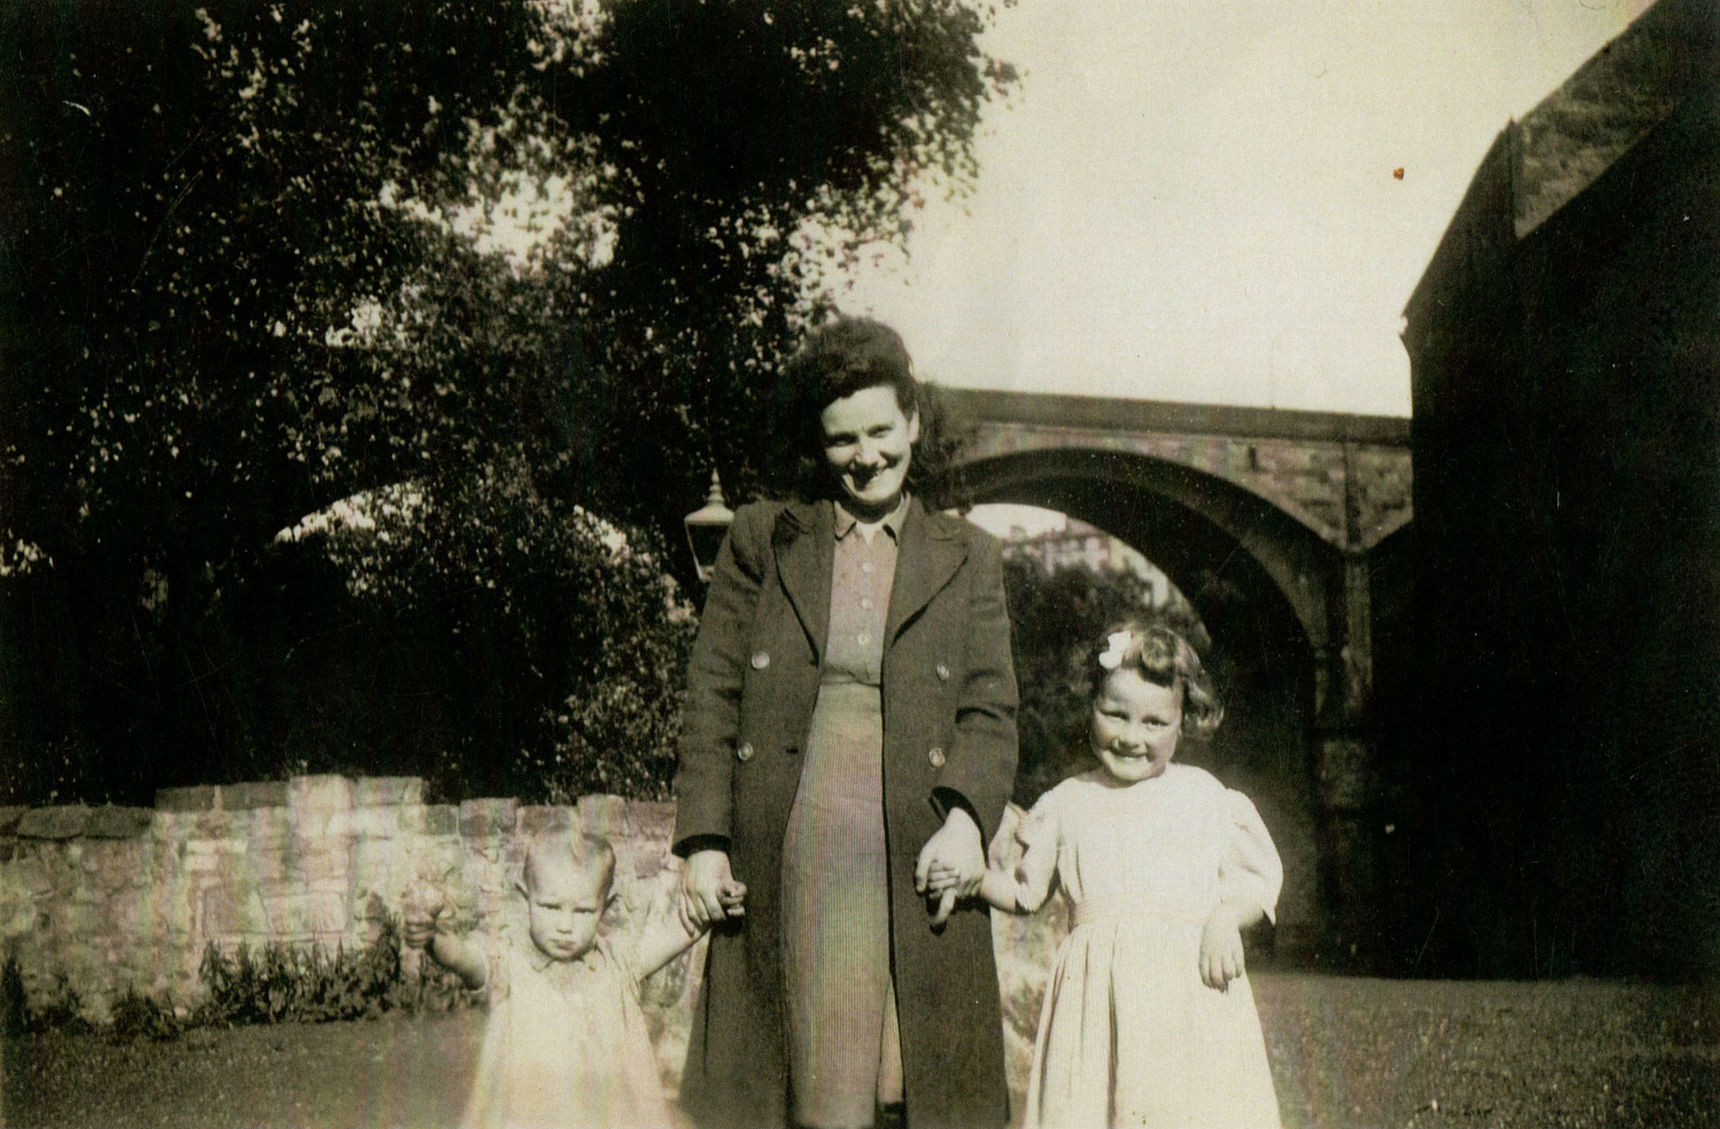 Me, Mum & Avril in Miller Row pictured with the Dean Bridge